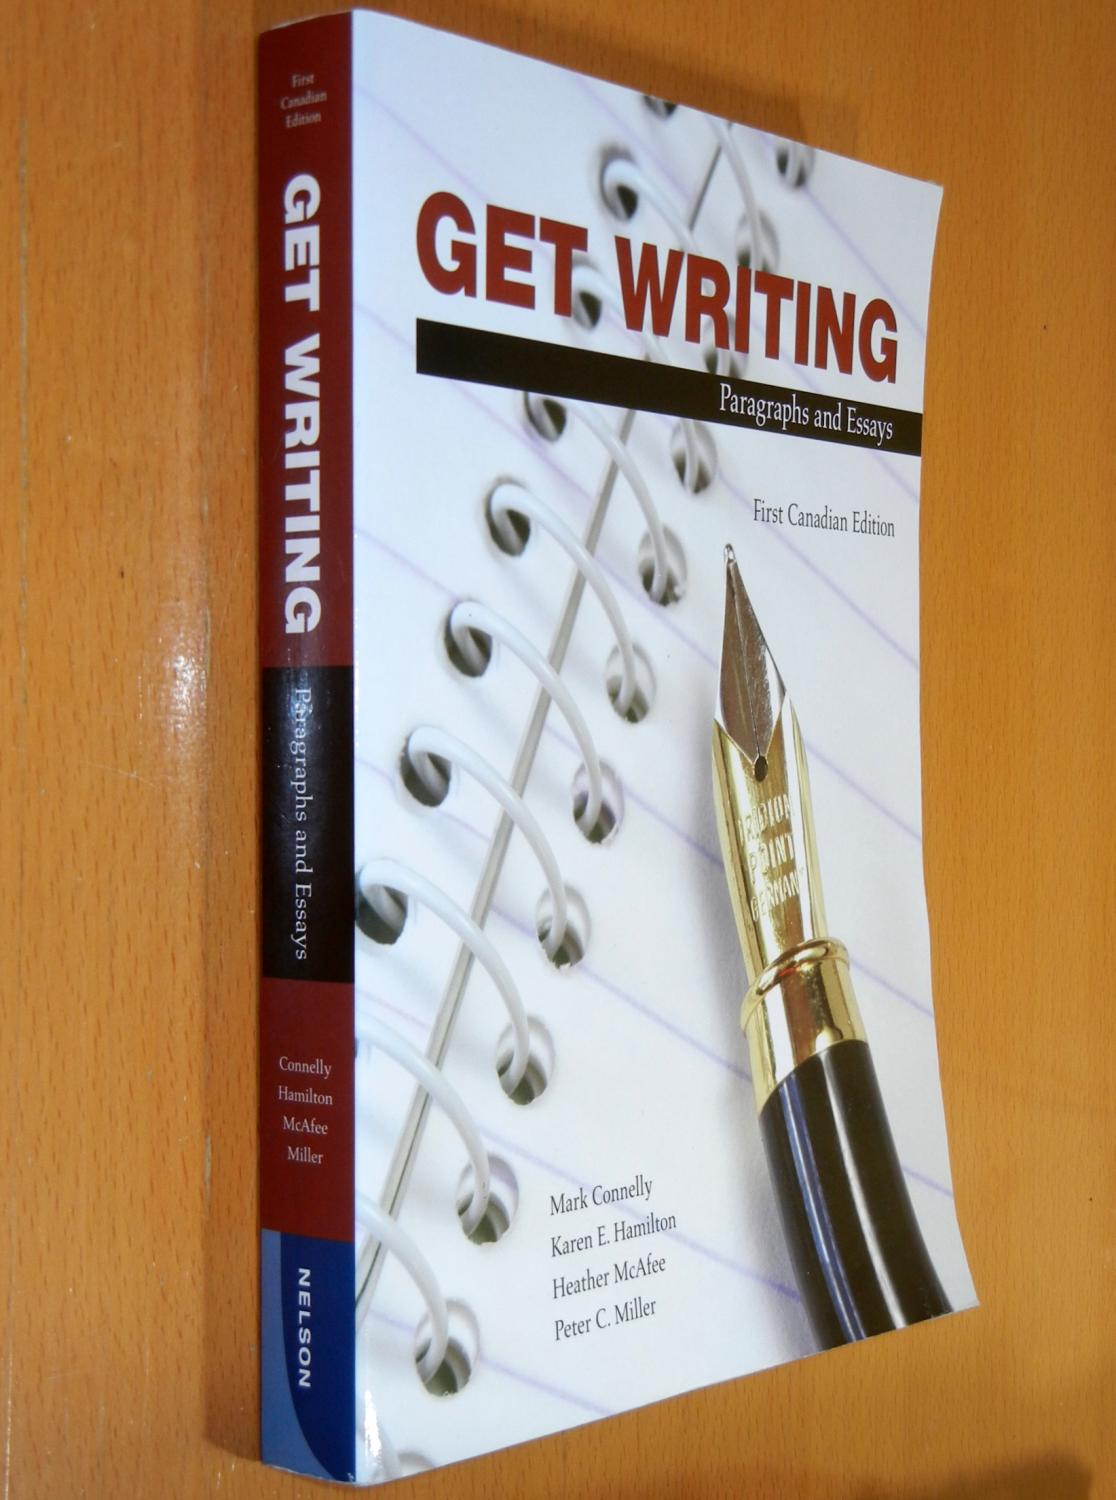 Get Writing: Paragraphs and Essays (First Canadian Edition) by